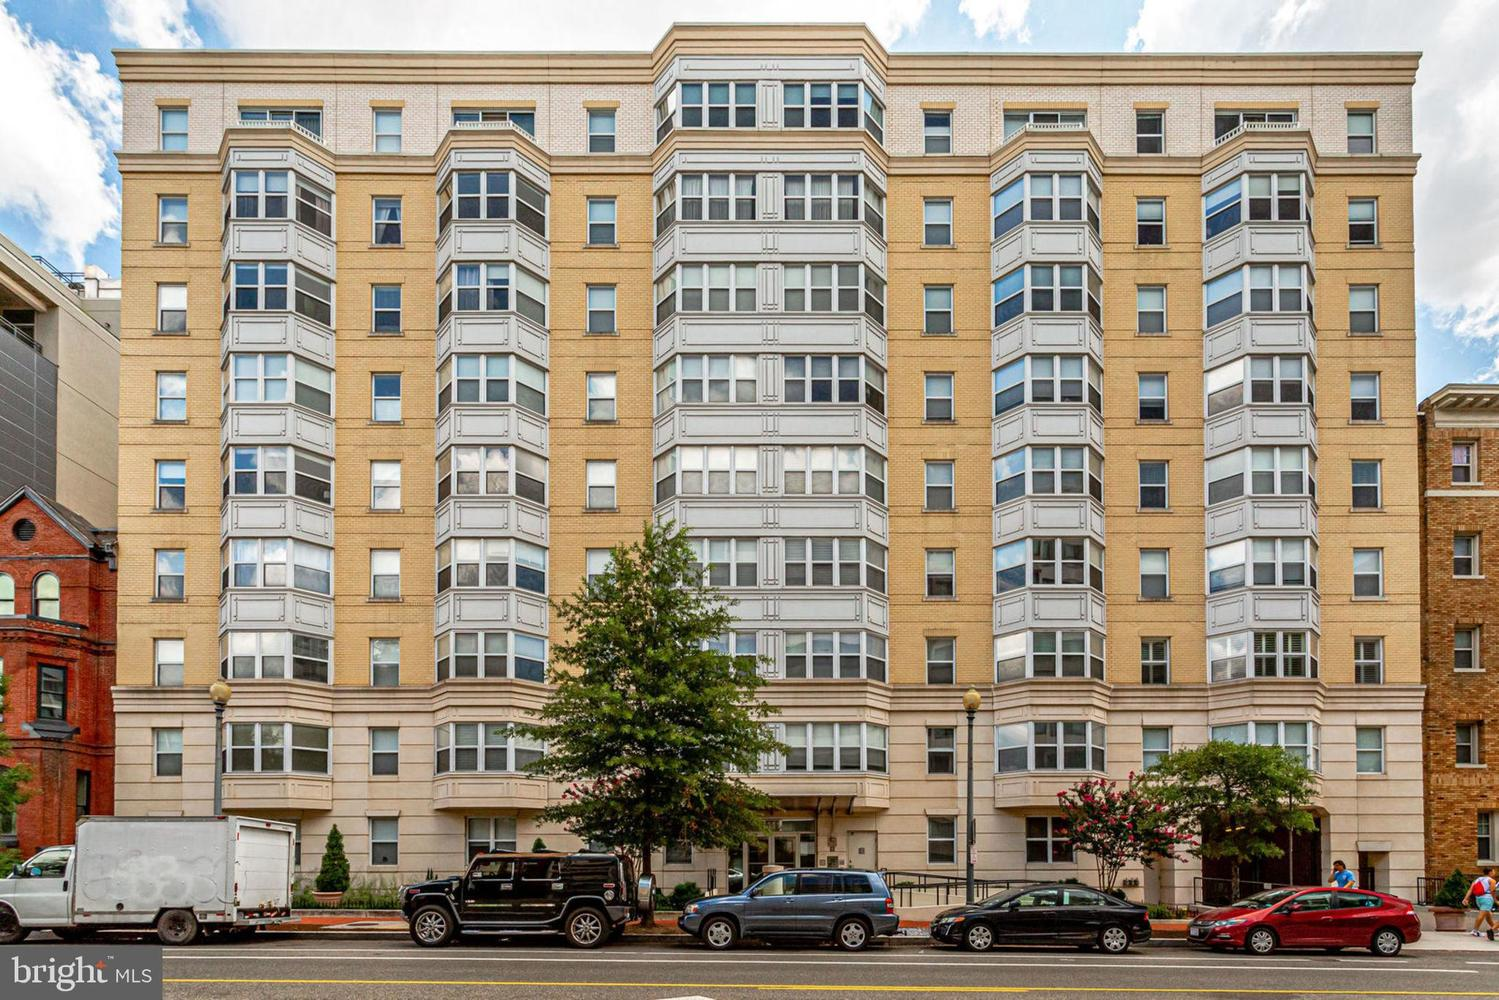 1111 11th Street Northwest, Unit 102 Washington, DC 20001